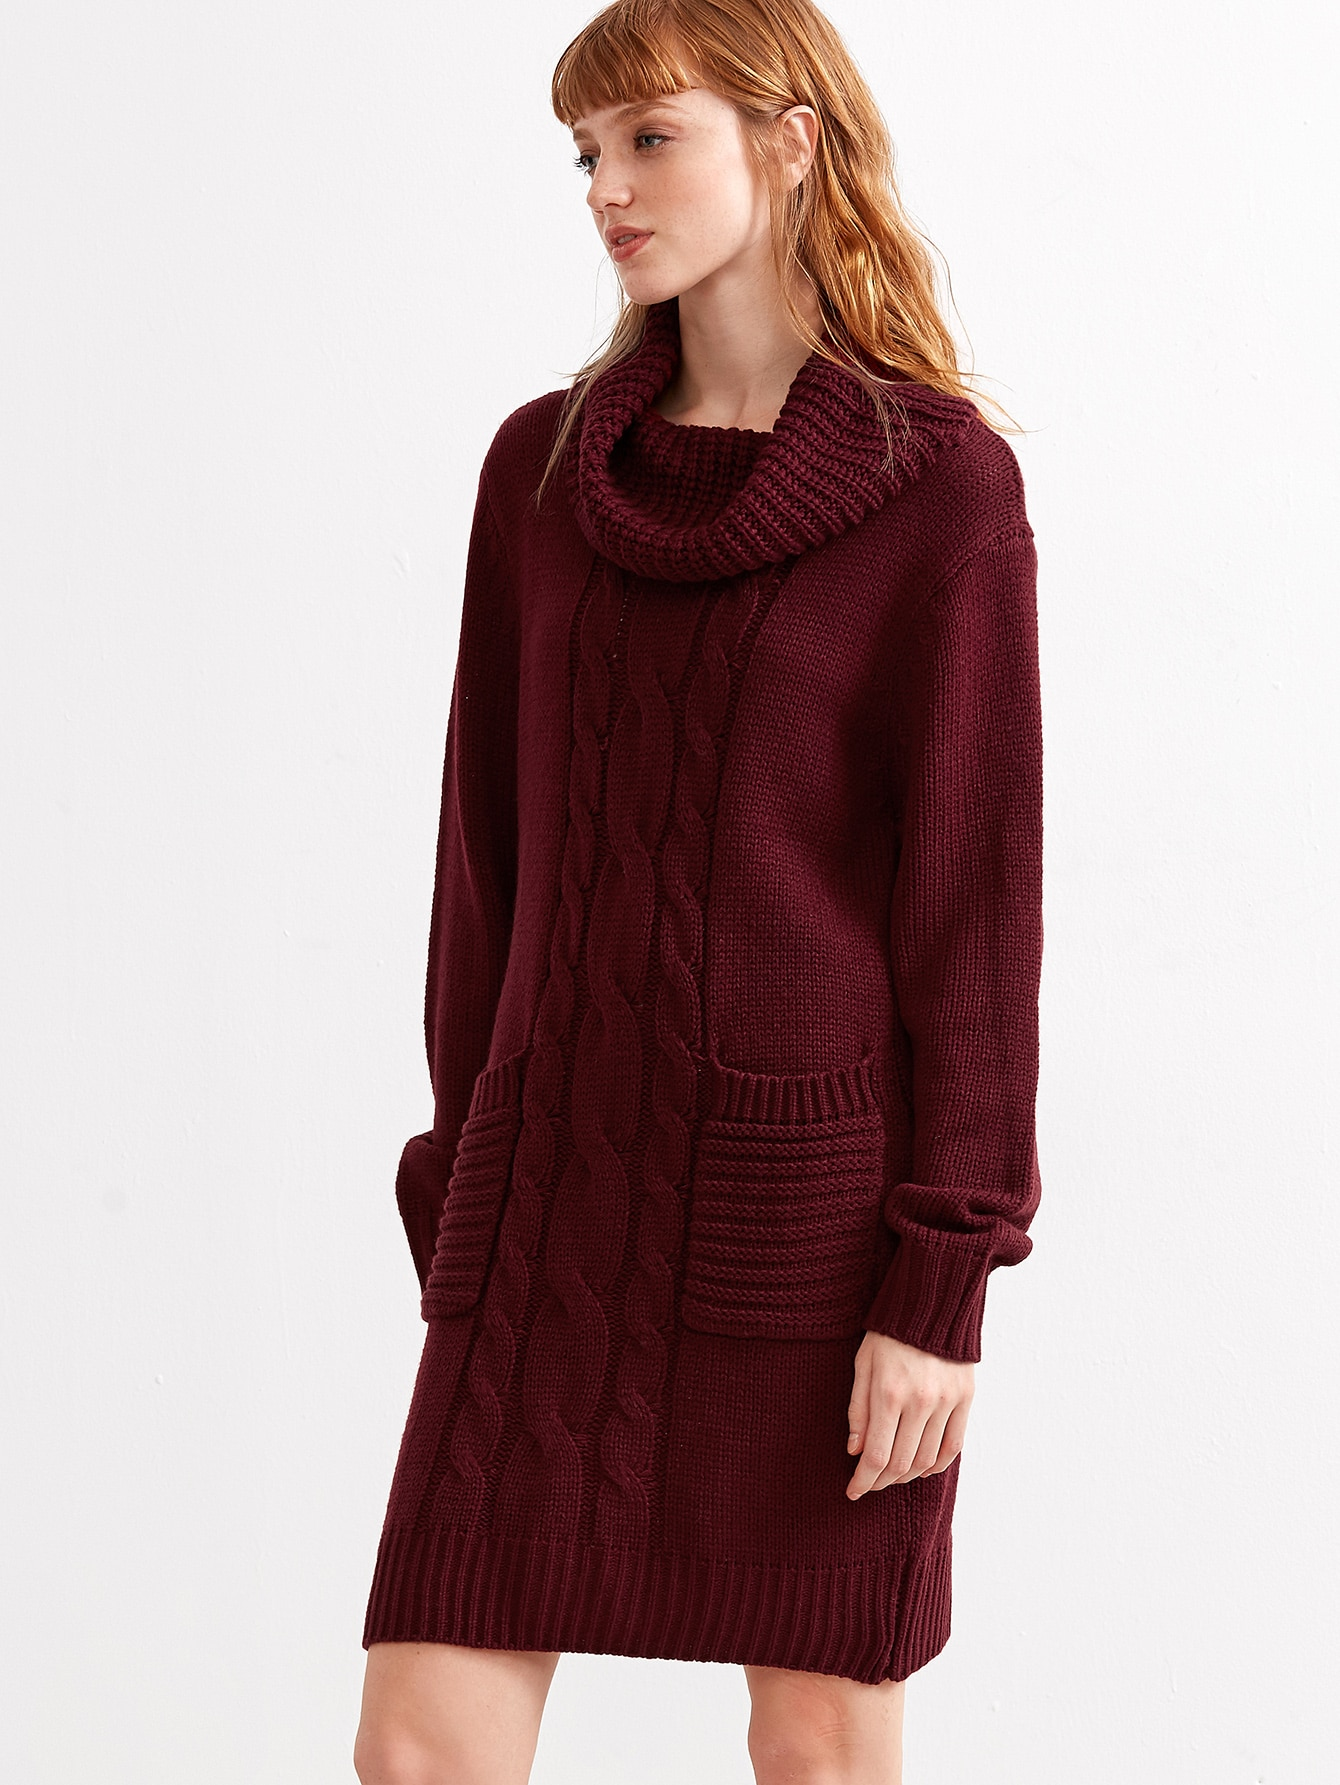 Burgundy Cable Knit Cowl Neck Sweater Dress With Pocket -SheIn ...